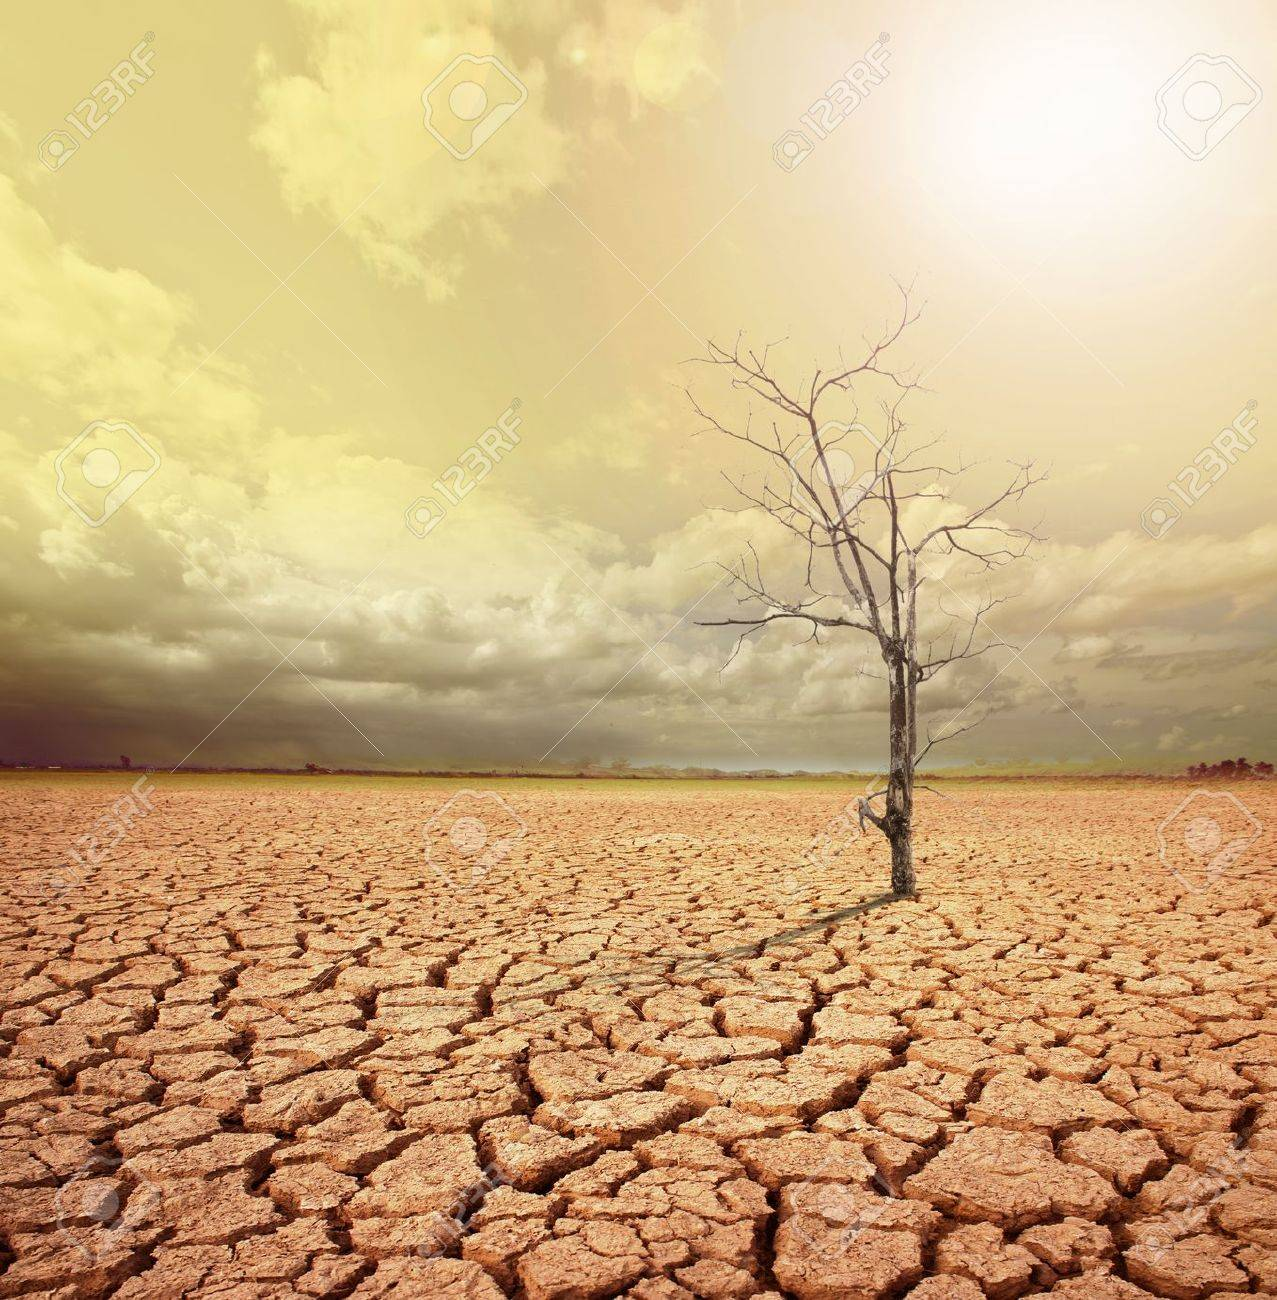 concept image of global warming Stock Photo - 19370561